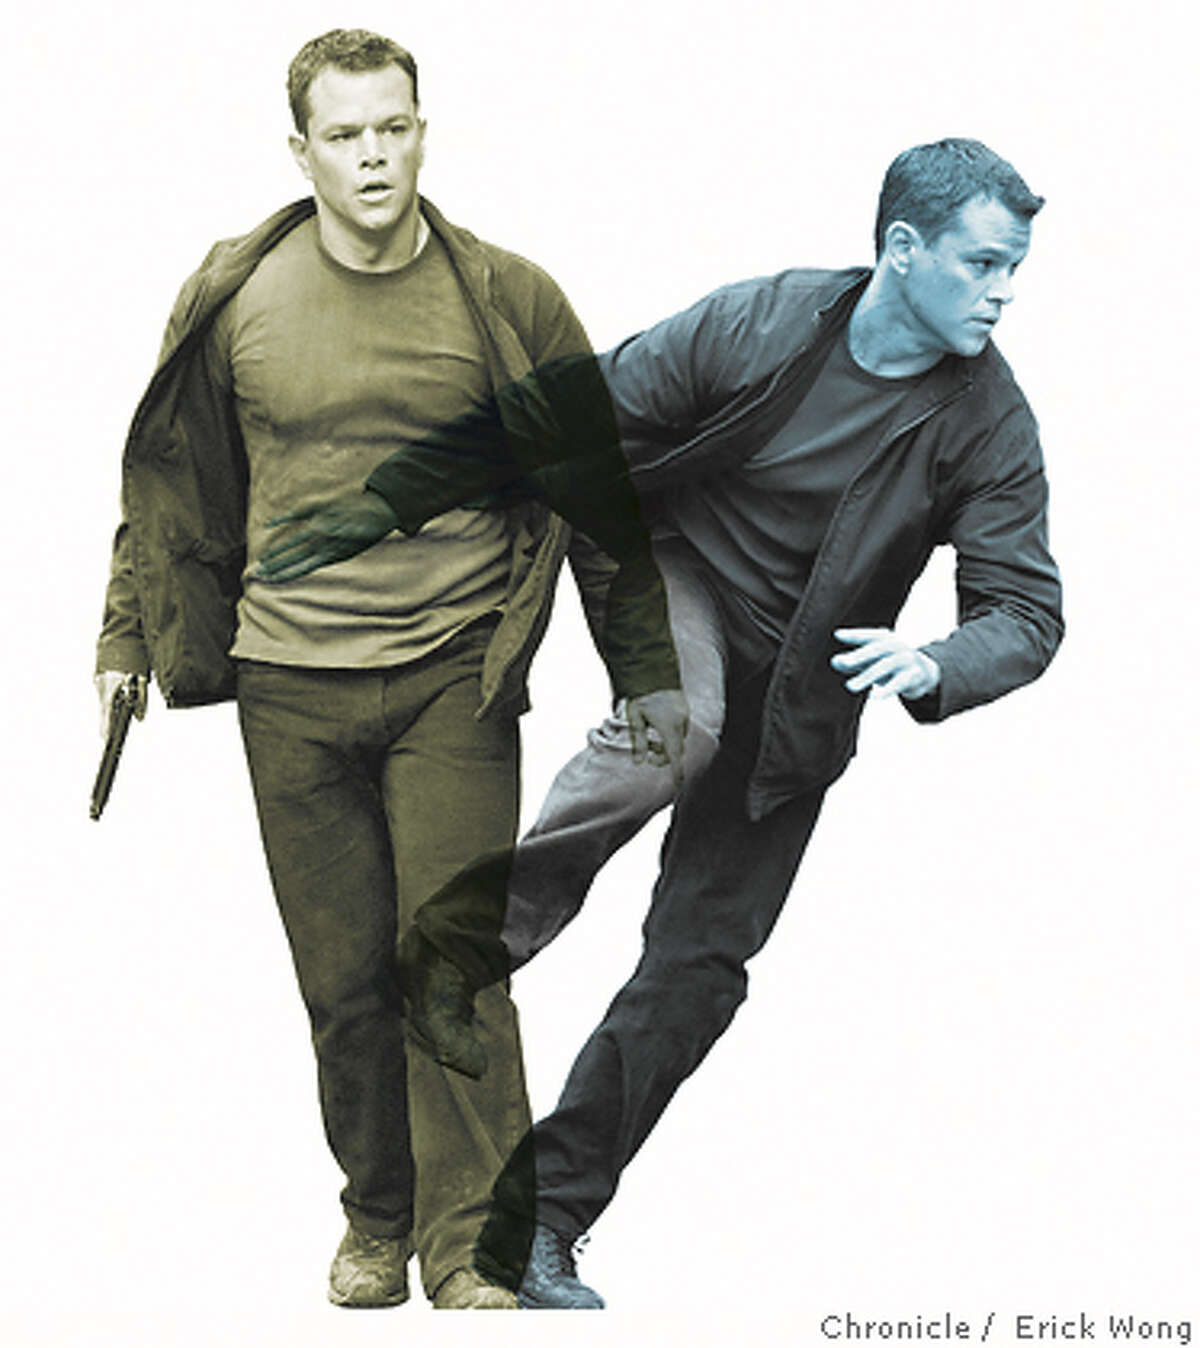 """Matt Damon returns as the title character in """"The Bourne Ultimatum."""" Universal Pictures photos by Jasin Boland. Chronicle photo illustration by Erick Wong"""